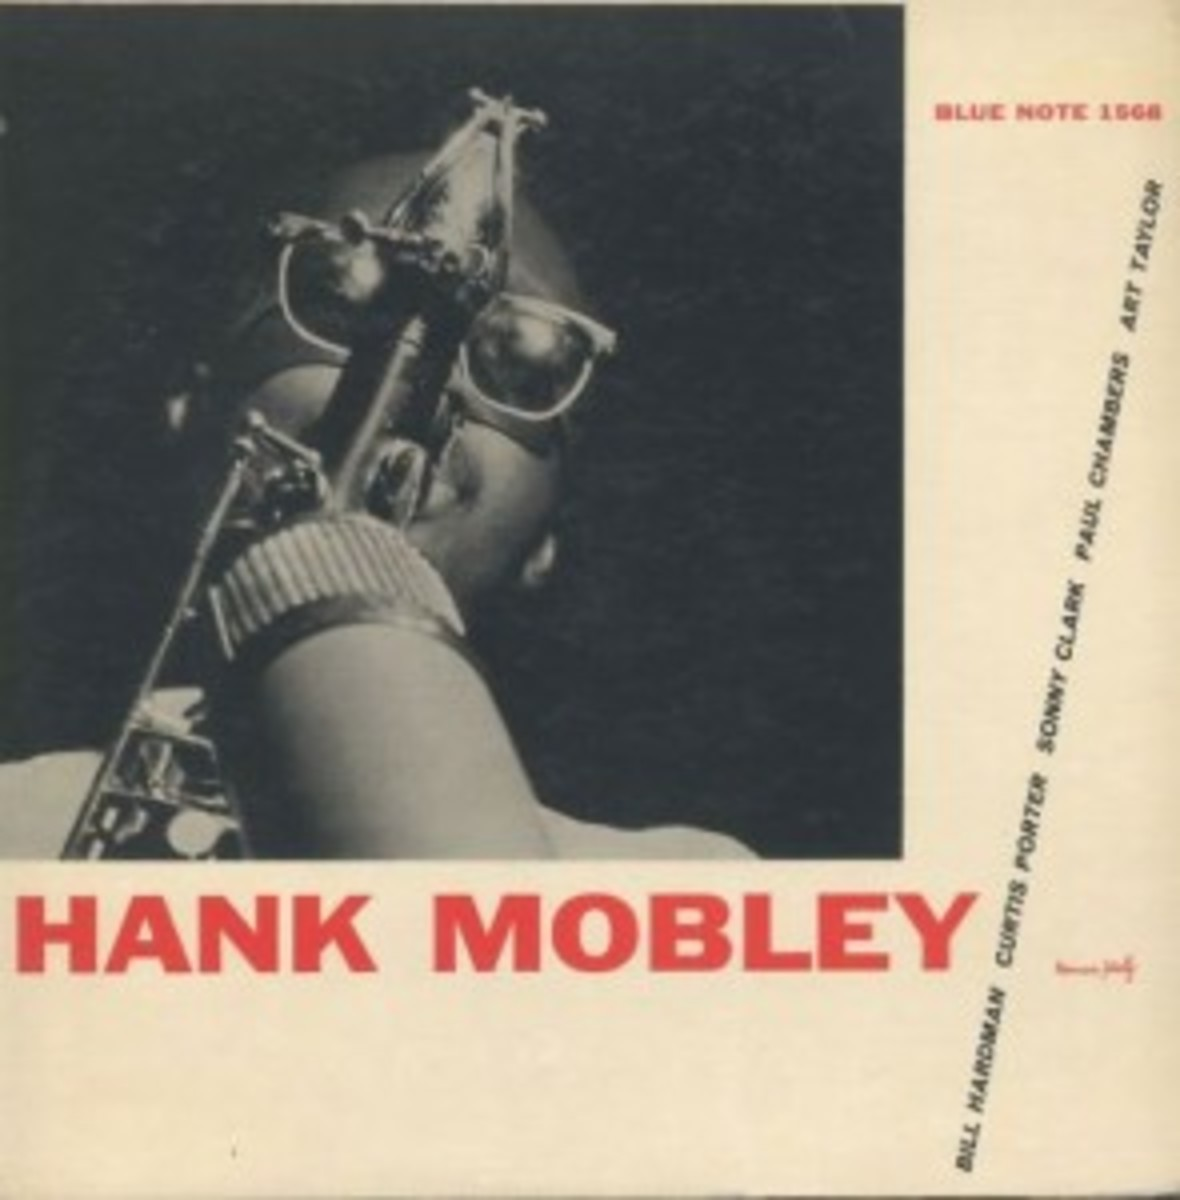 Hank Mobley on Blue Note